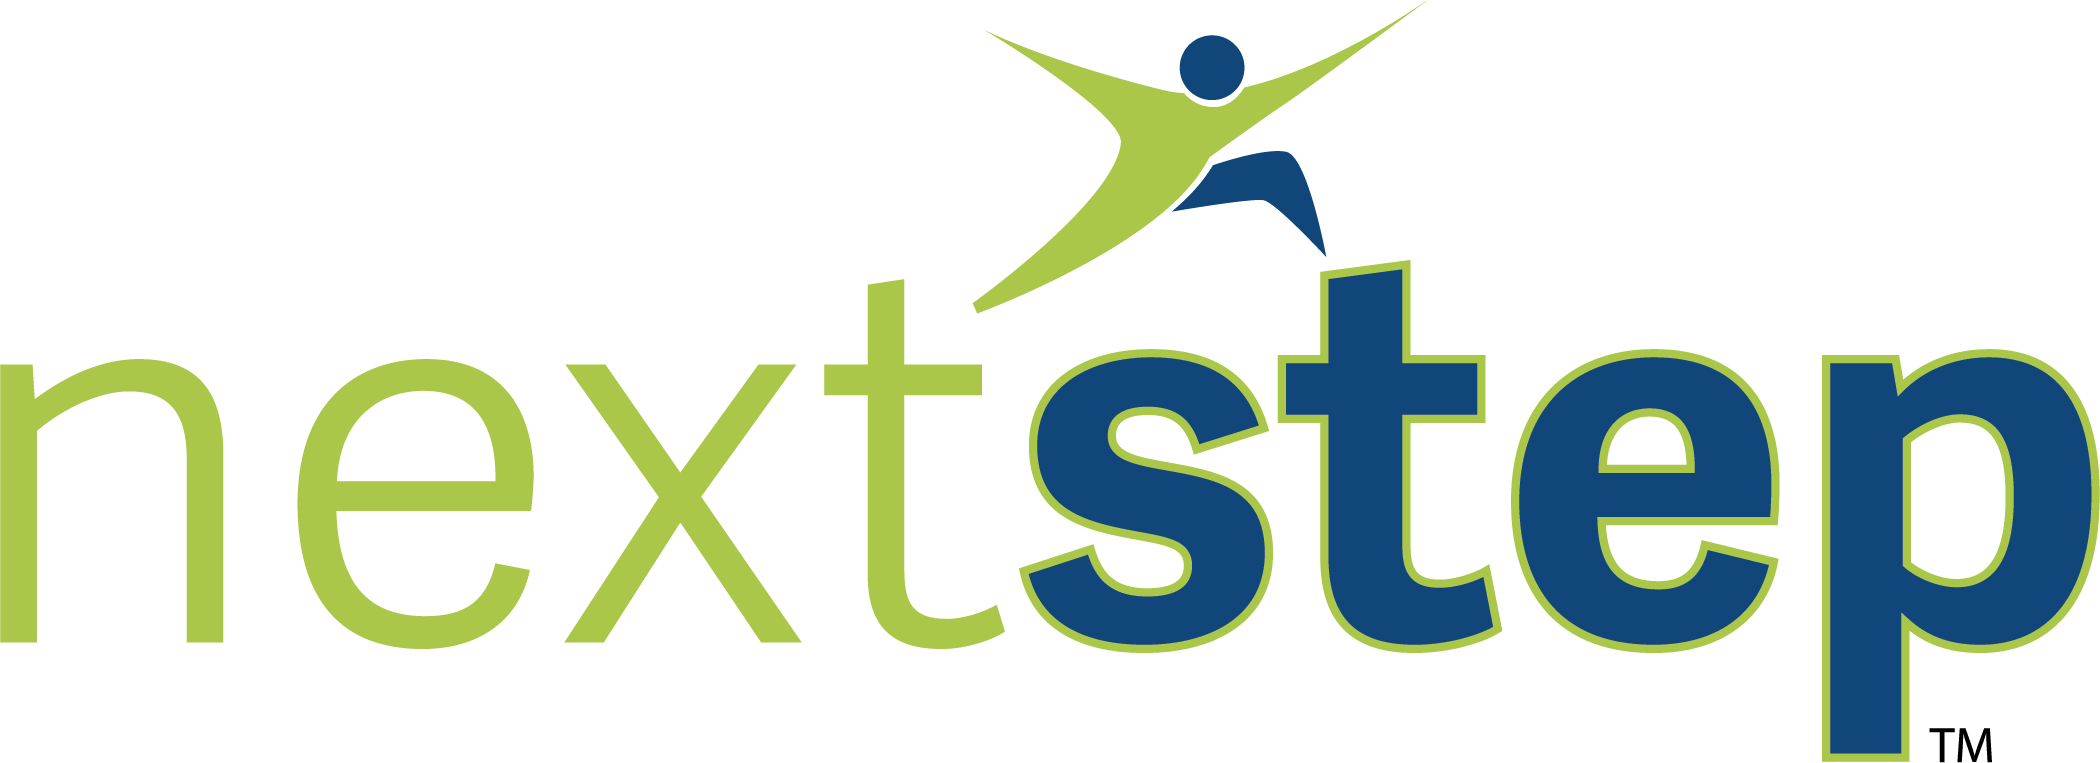 NextStep Careers in St. James Parish, LA